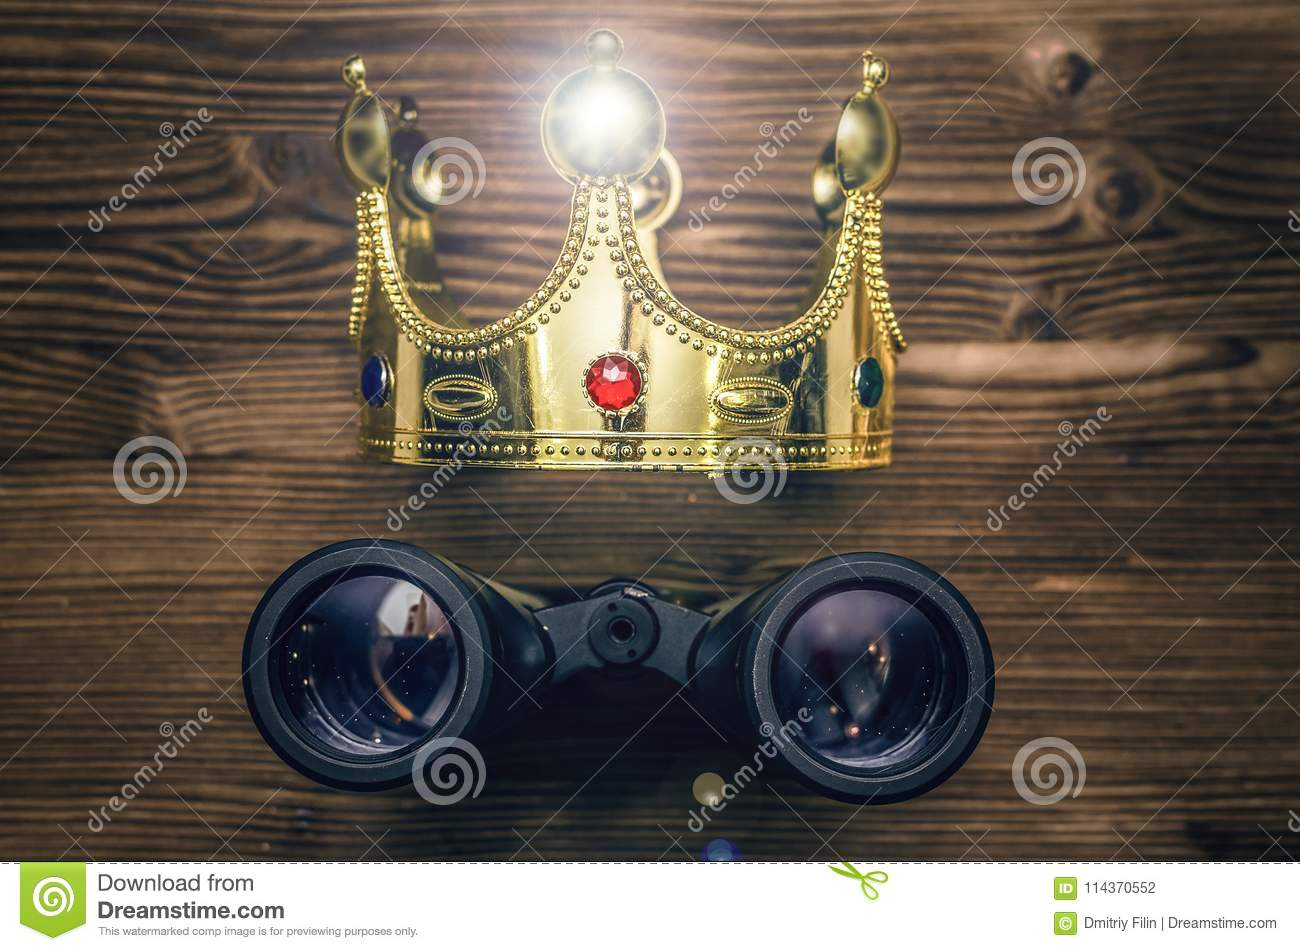 Vip search  stock photo  Image of above, gold, crown - 114370552